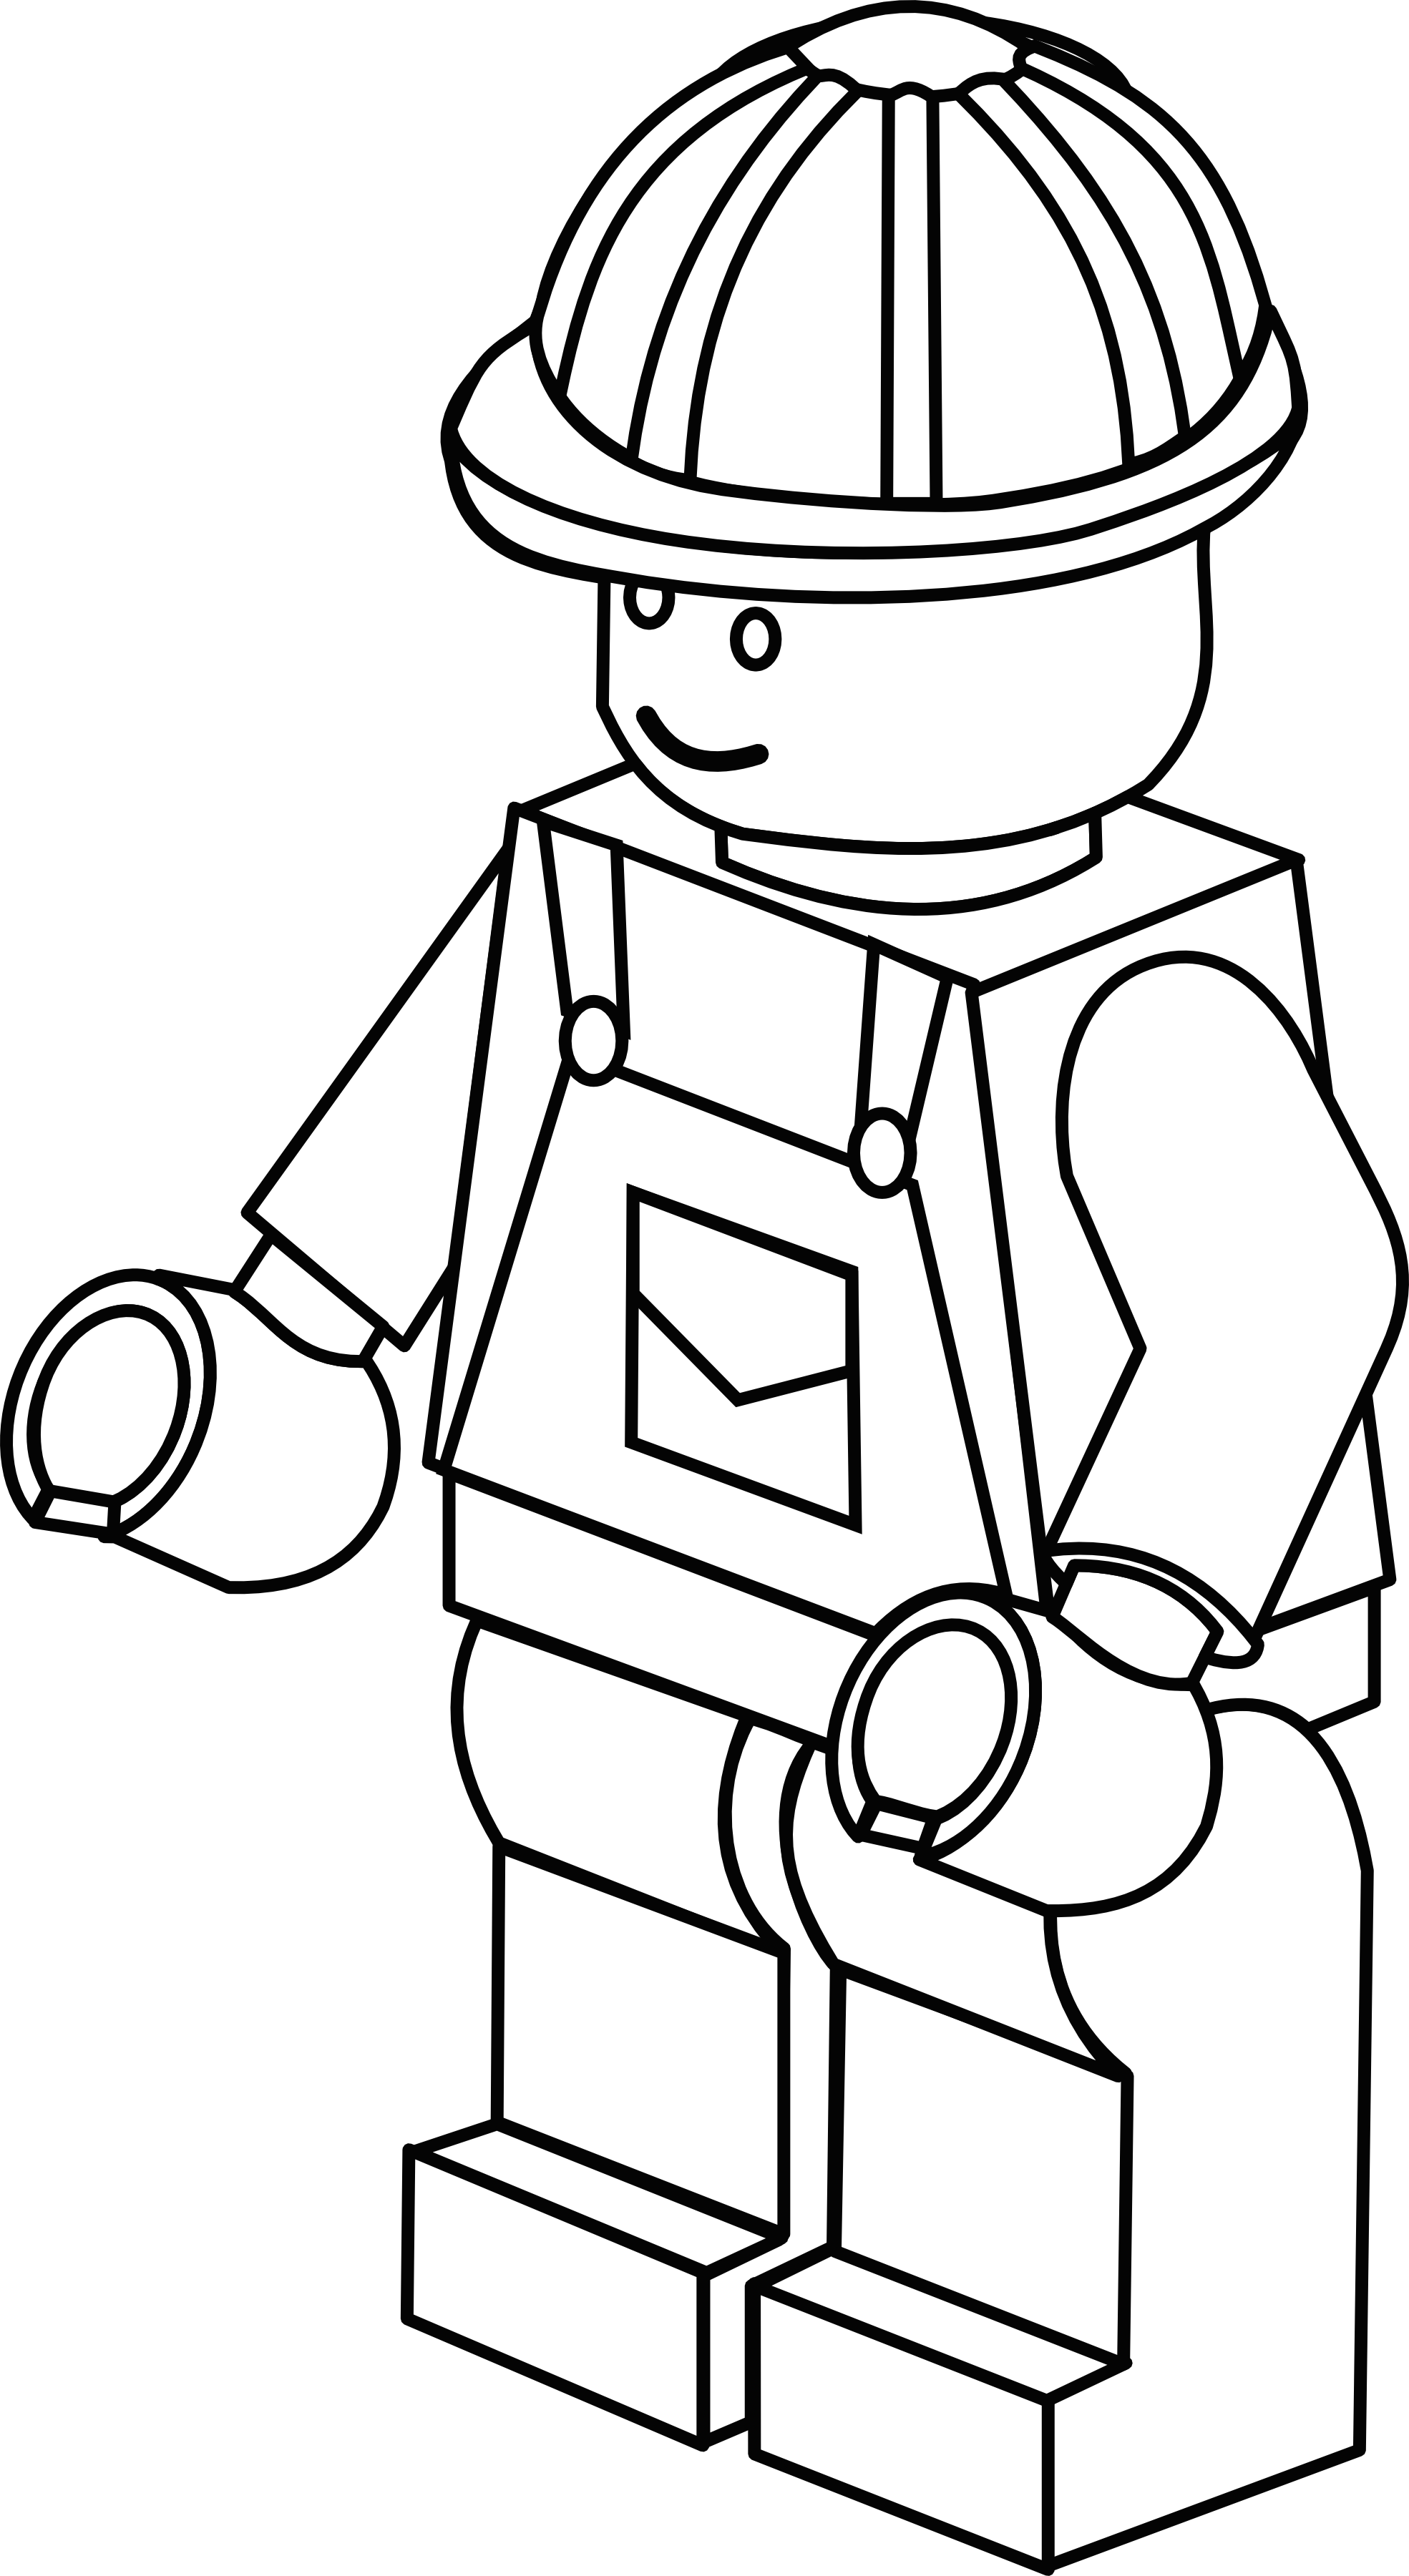 Drawing door colouring page. More complex lego figure